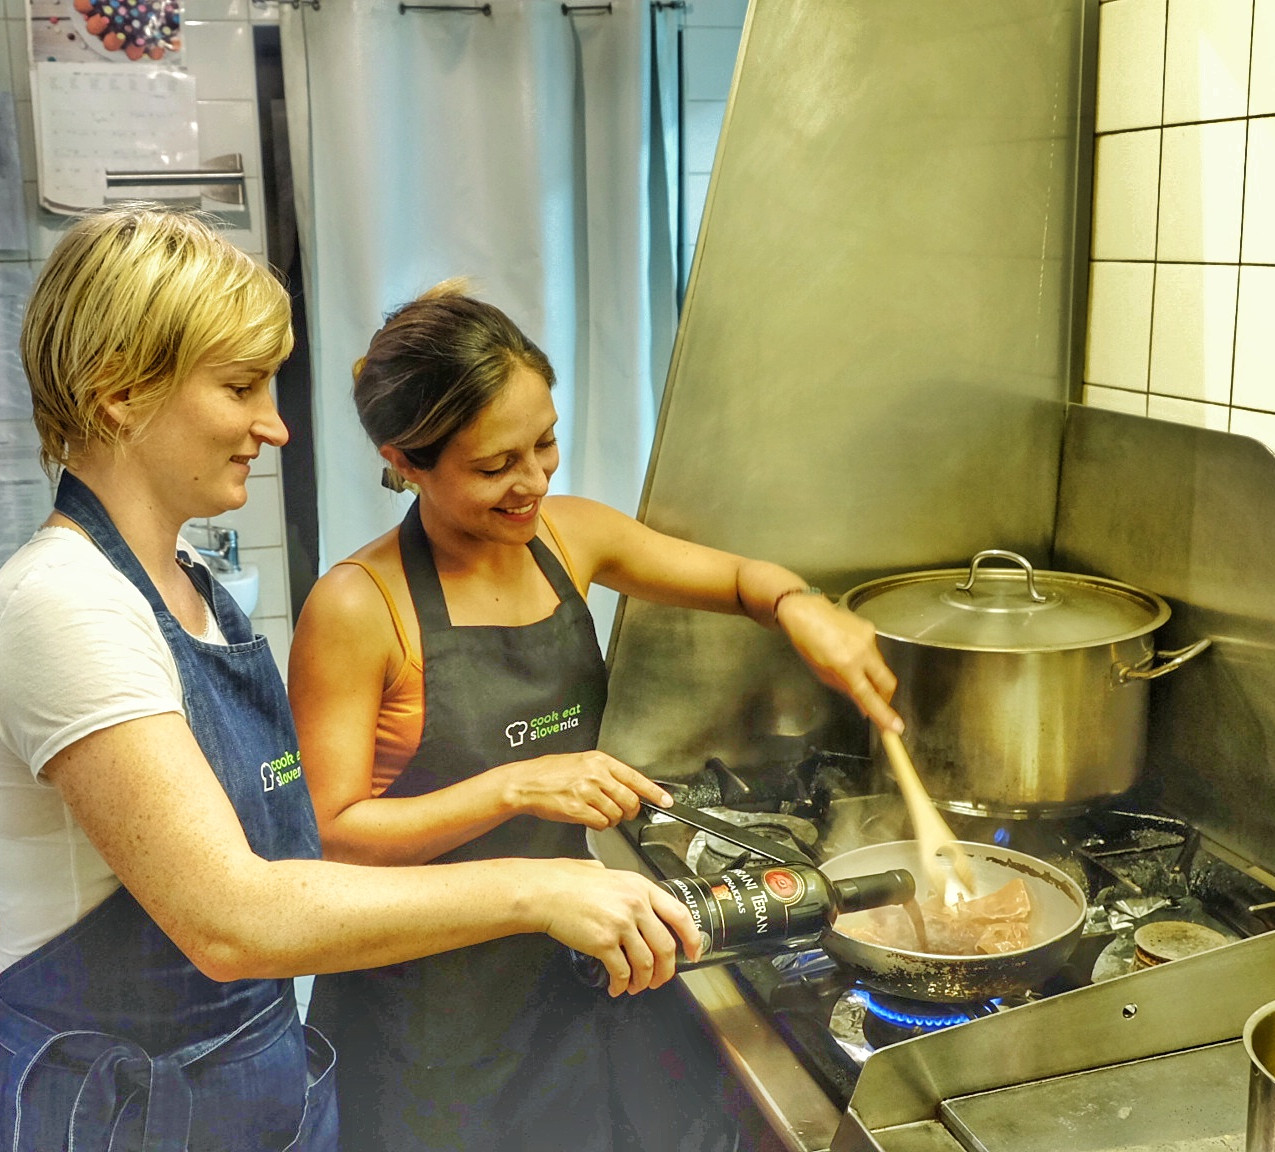 Spela and Stephanie Cooking the main Course at Cook Eat Slovenia, Ljubljana.